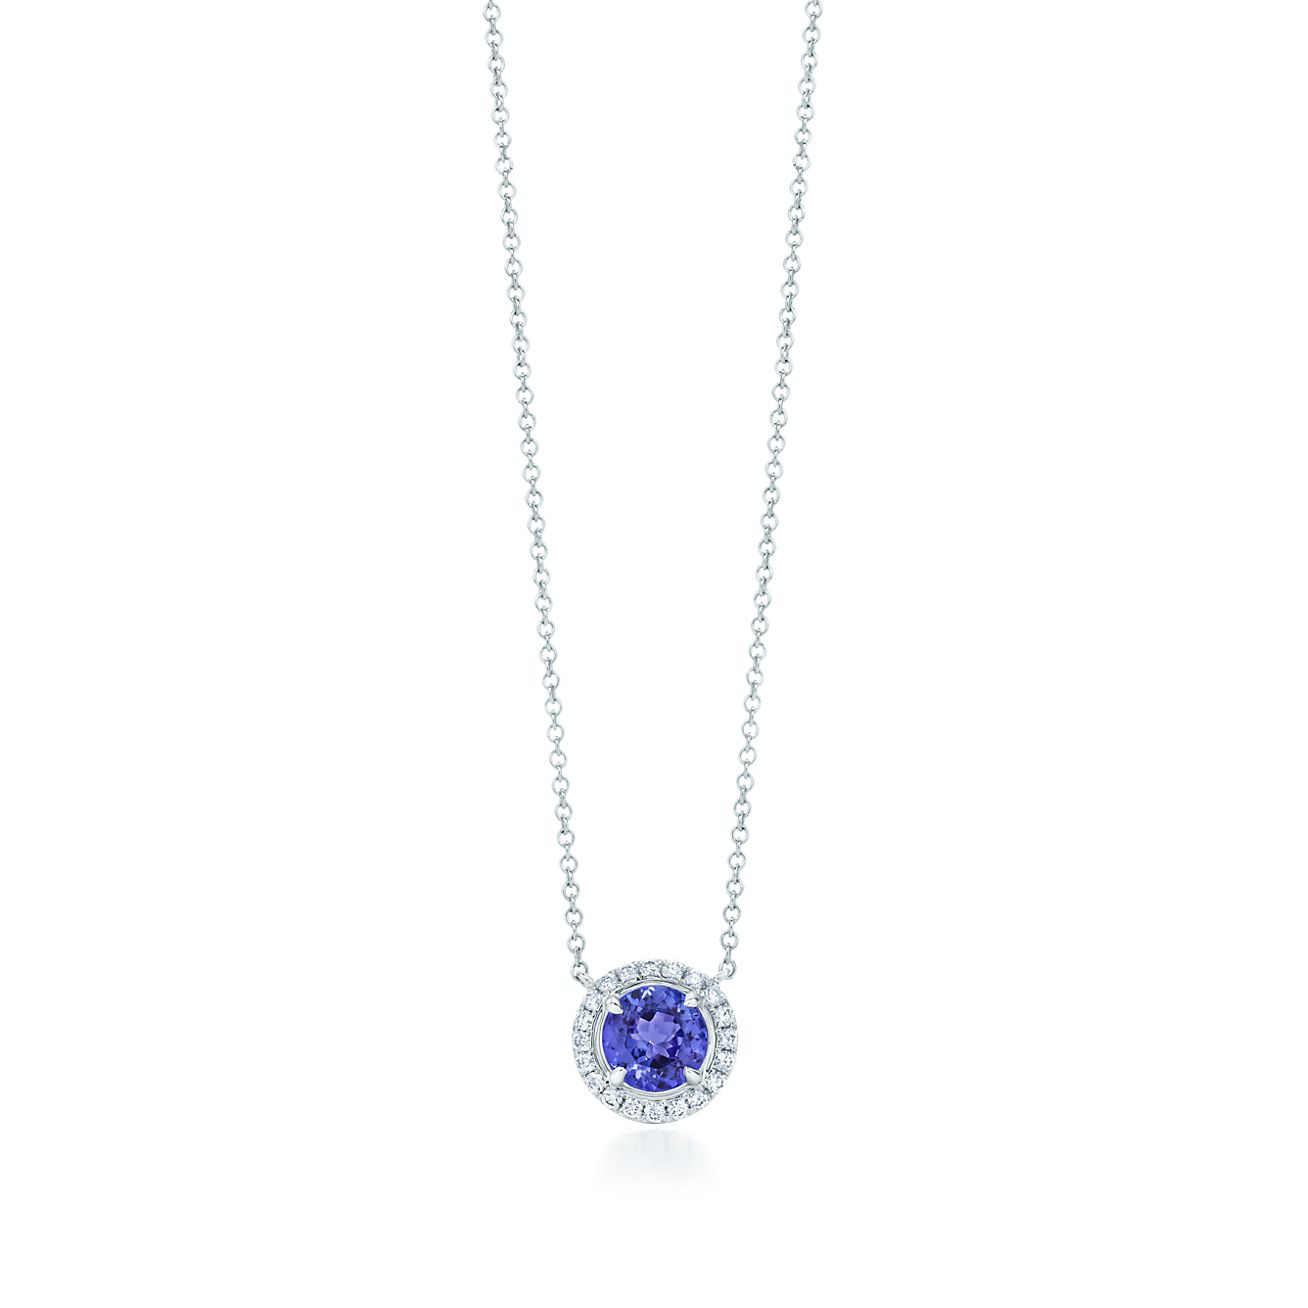 d50647582 Tiffany Soleste Pendant In Platinum With A Round Tanzanite. Centering An  Oval Shaped Sapphire ...